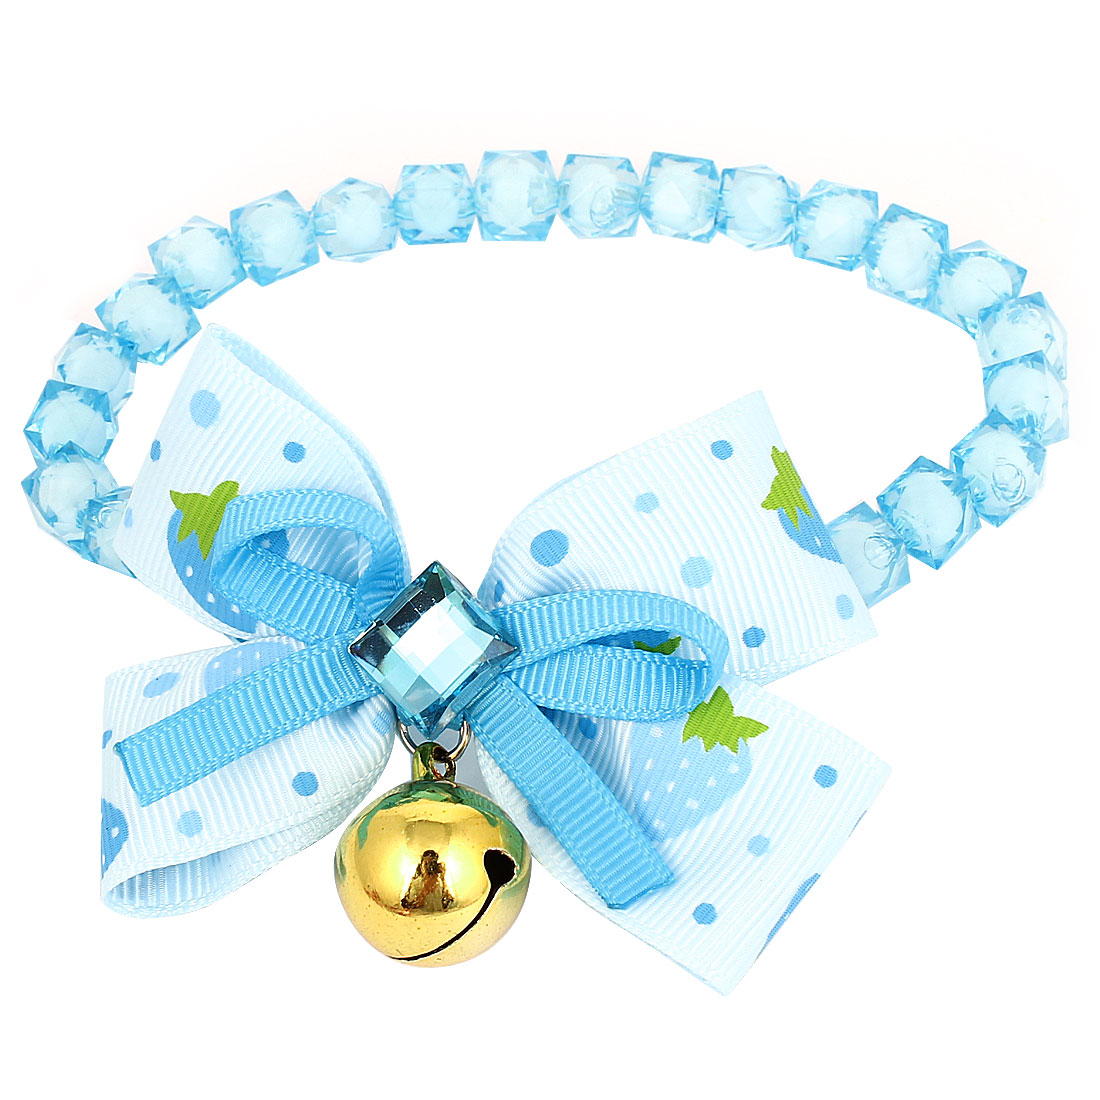 Metal Bell Pendant Bowtie Accent Pet Dog Faceted Beads Collar Necklace Blue White S